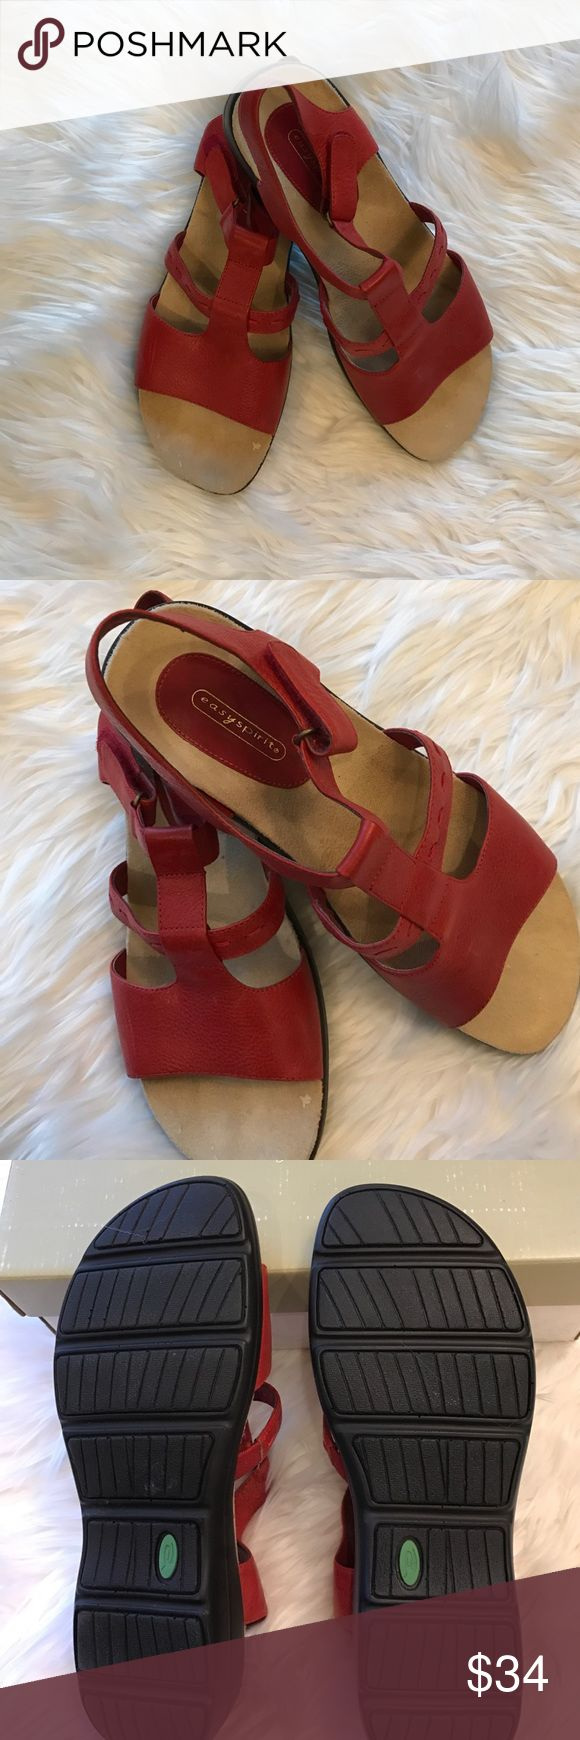 Red Easy Spirit Sandals Like New! Very comfortable but never worn!  Very cute sandals with Velcro closure on the strap.  Red stiching detail. Easy Spirit Shoes Sandals